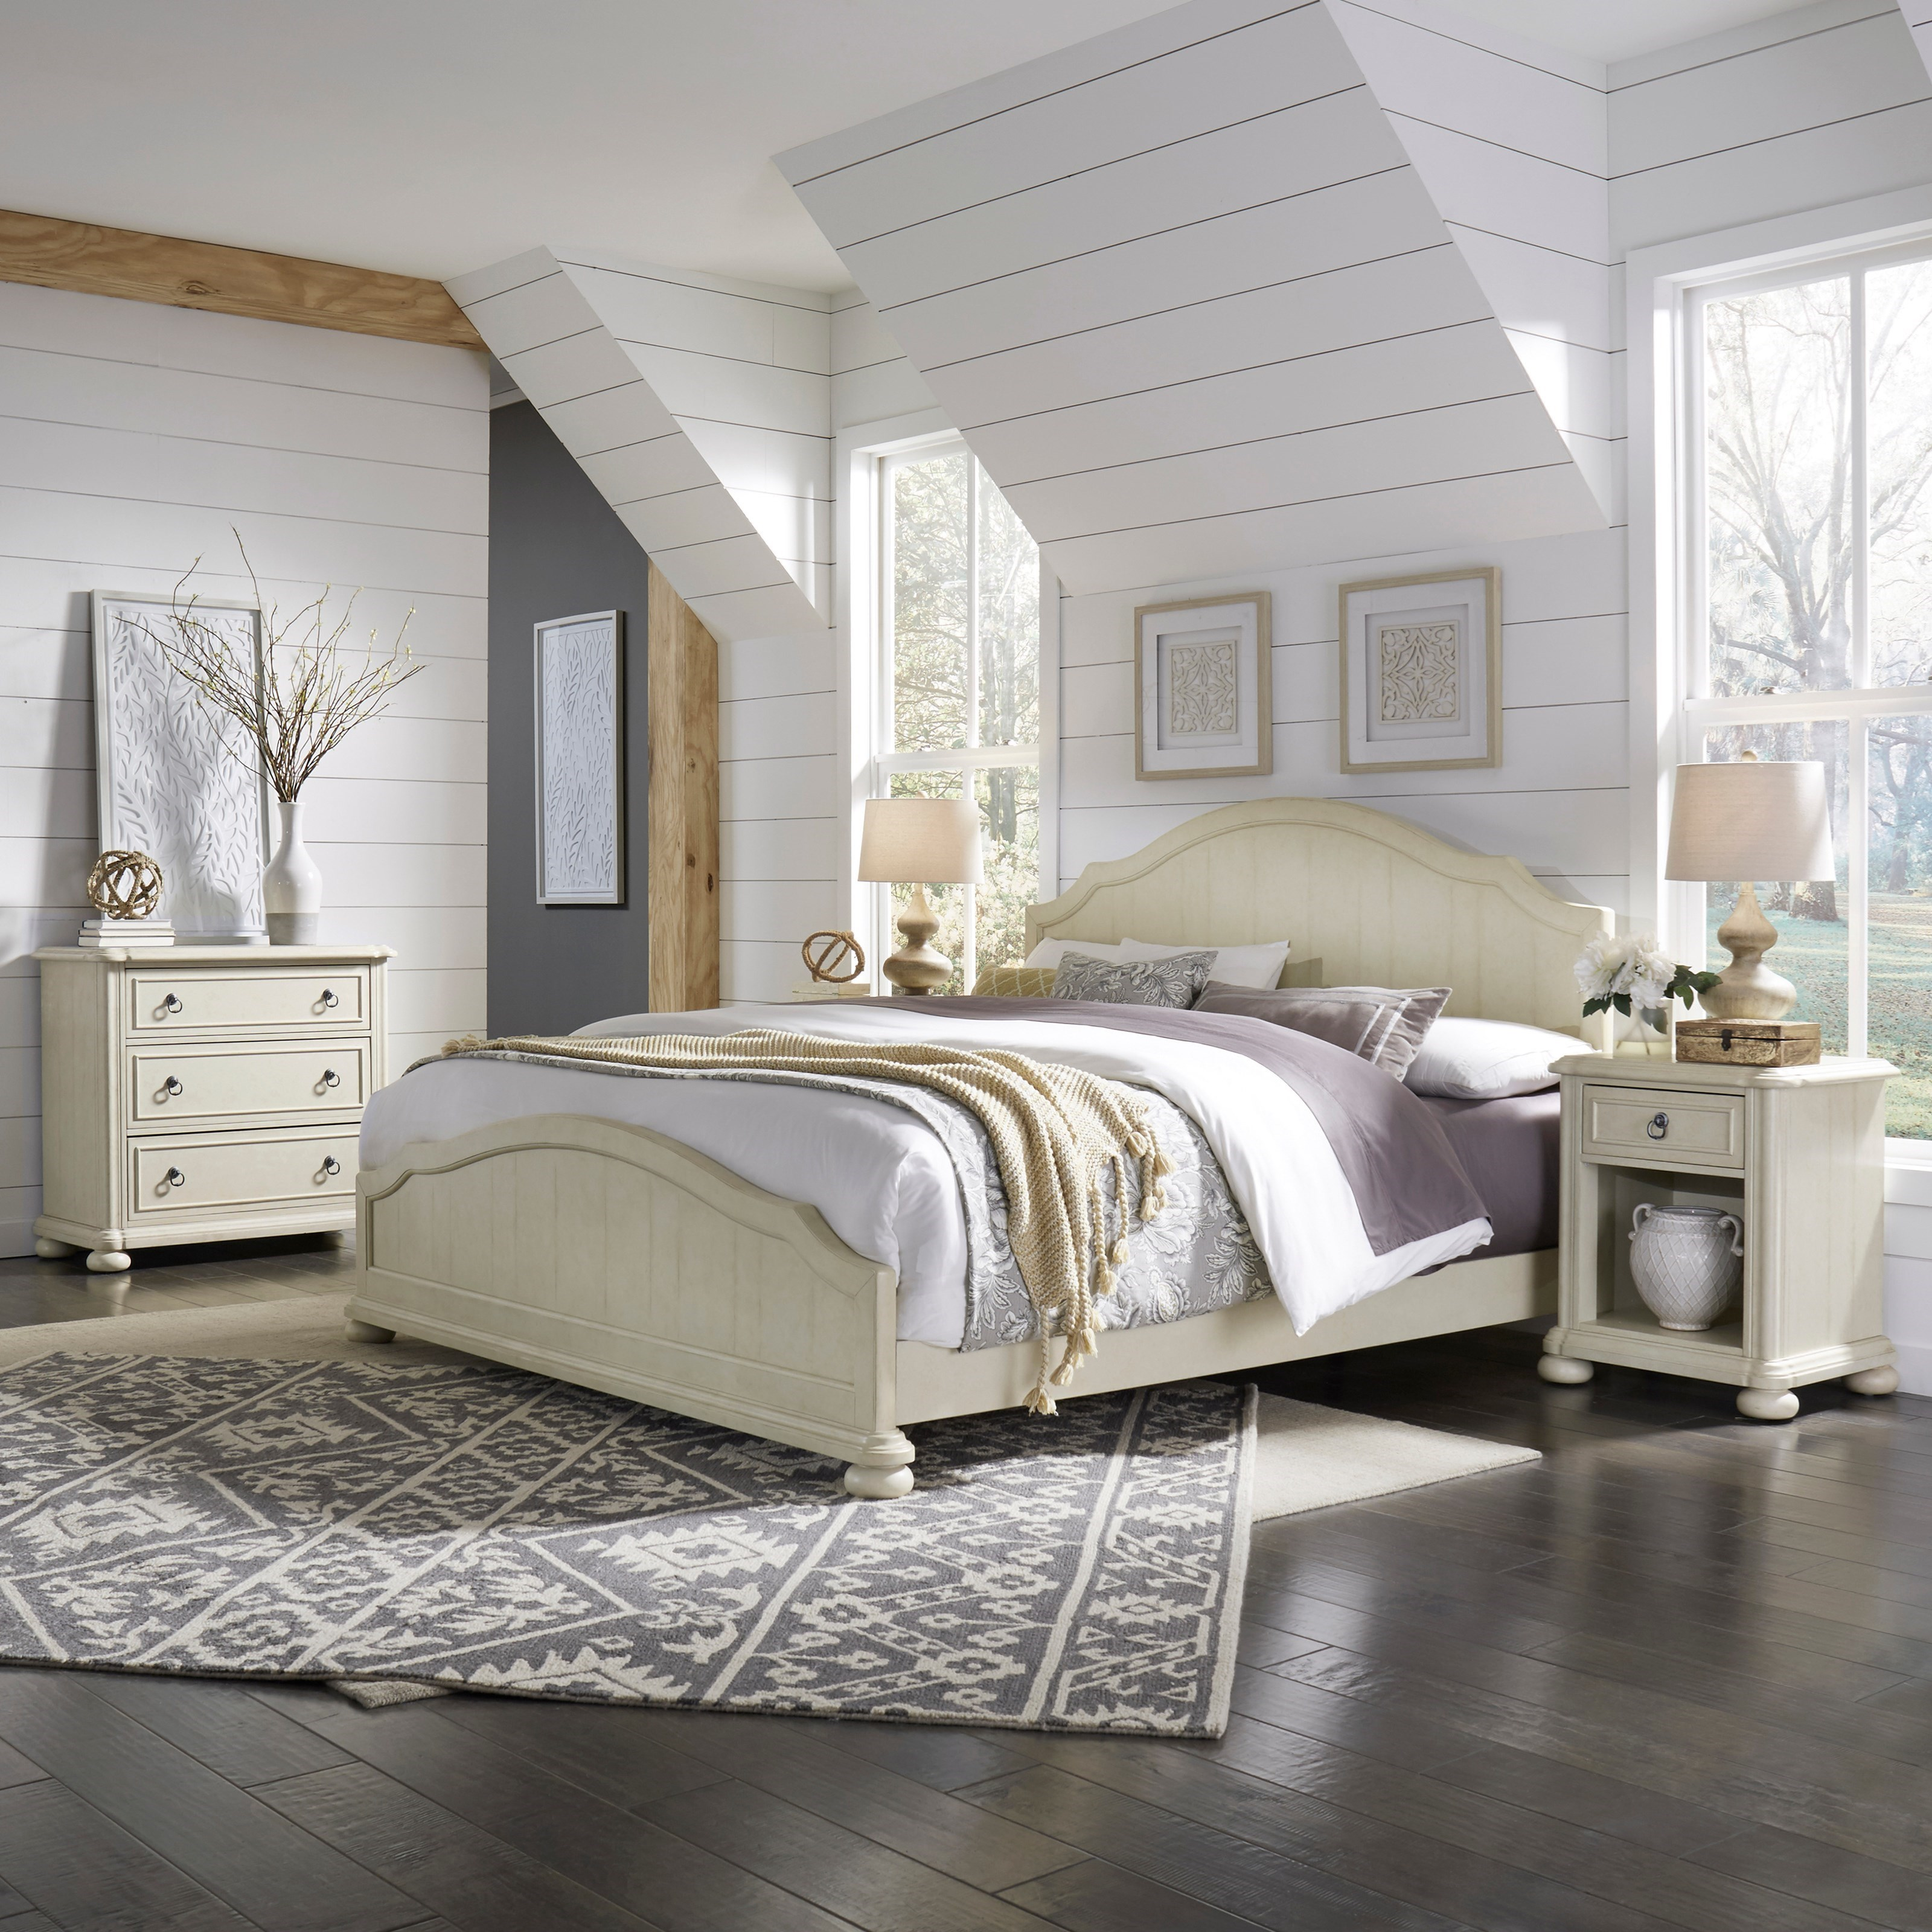 Provence King Bedroom Group by Homestyles at Furniture Superstore - Rochester, MN